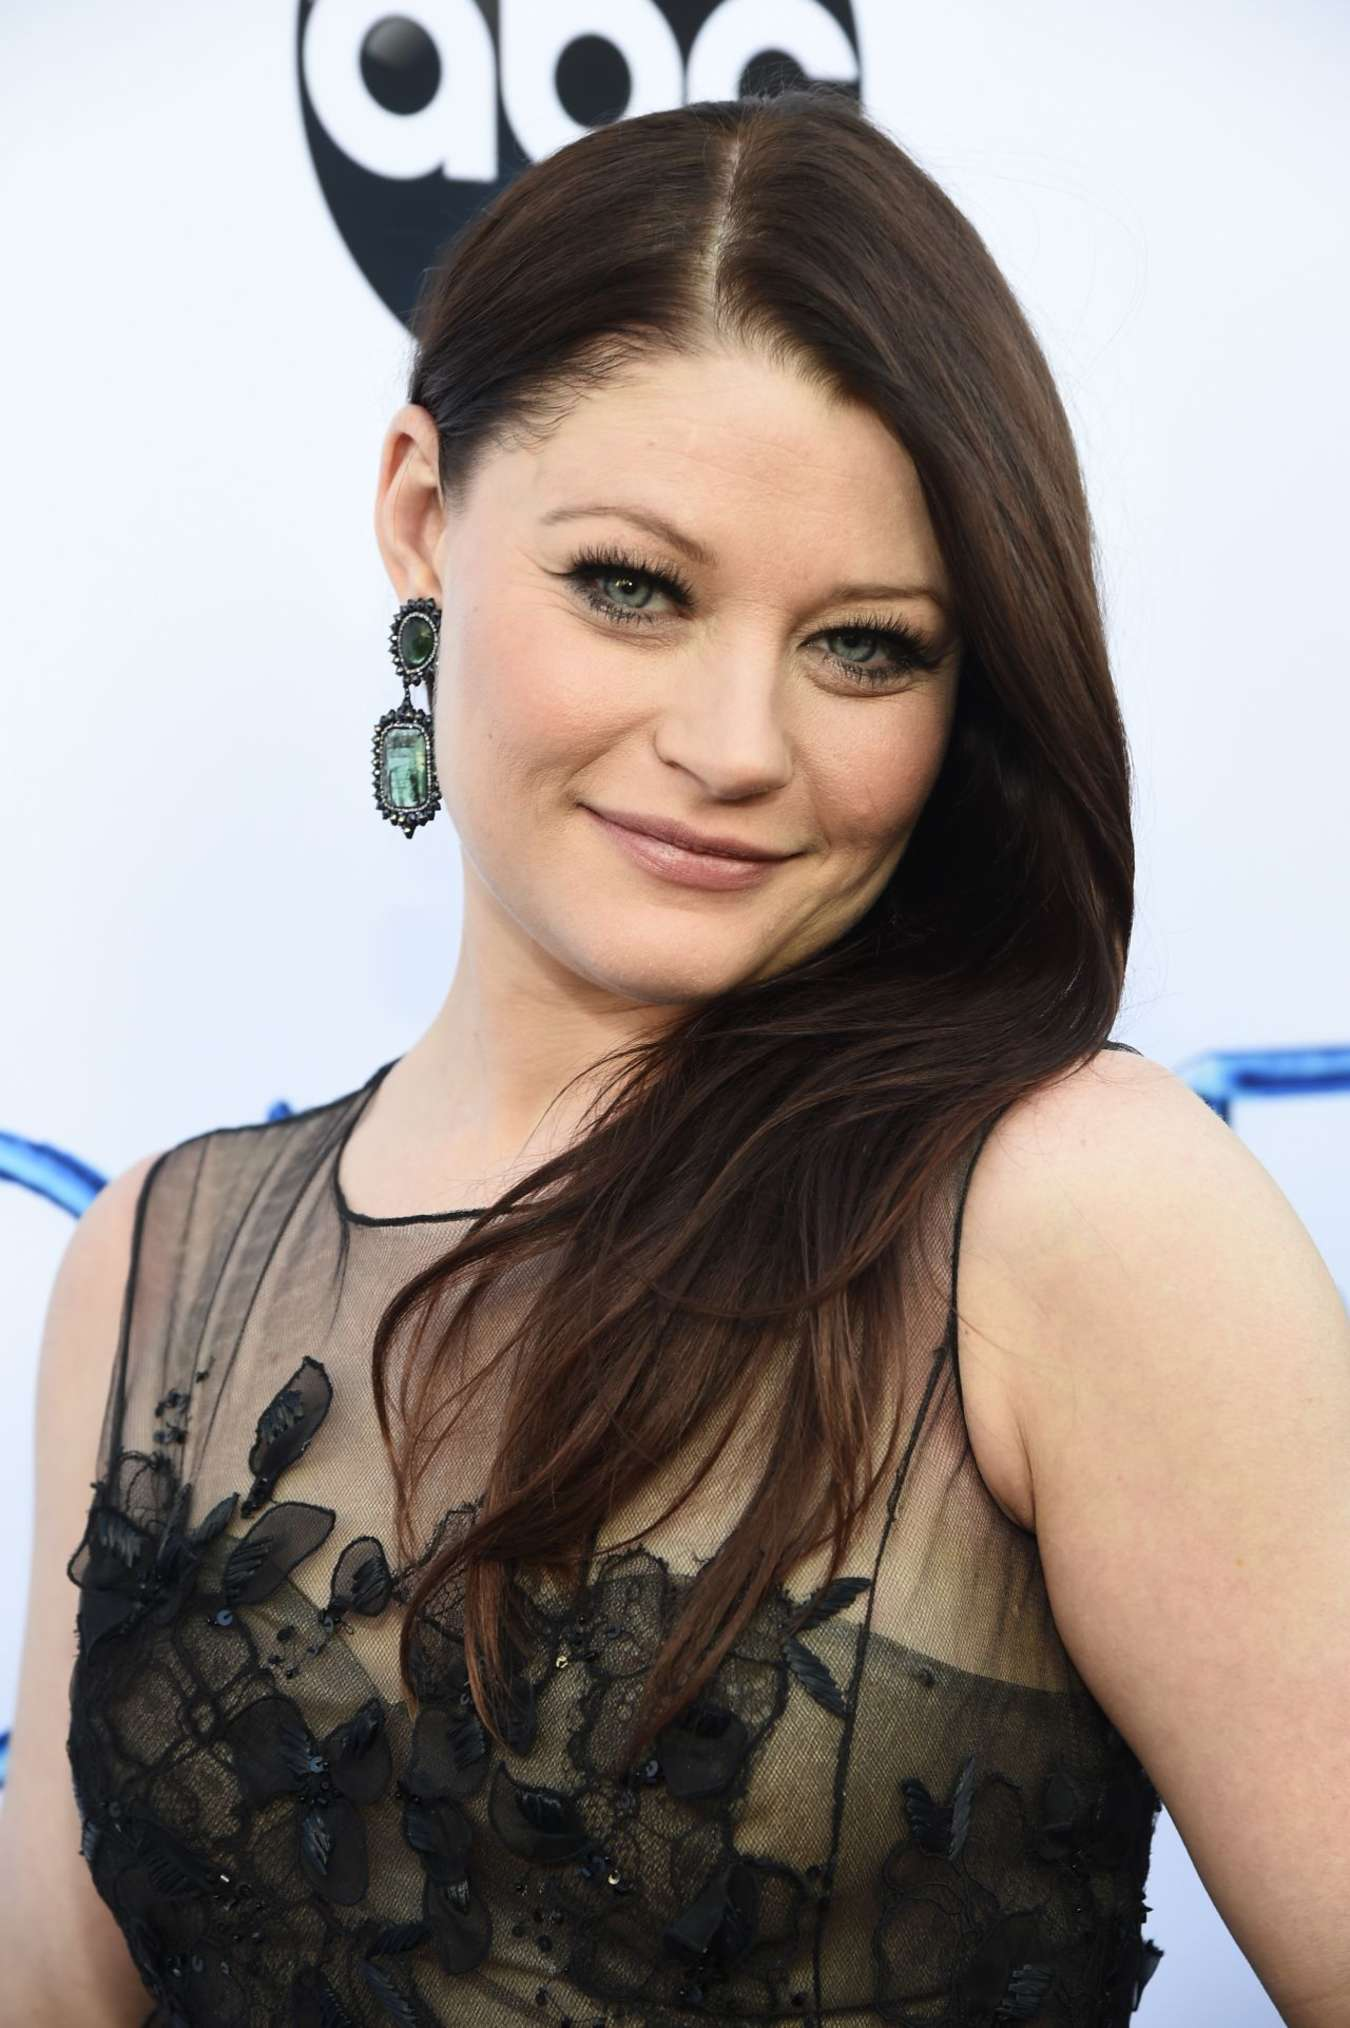 Emilie De Ravin Once Upon a Time Season Screening After Party in Hollywood